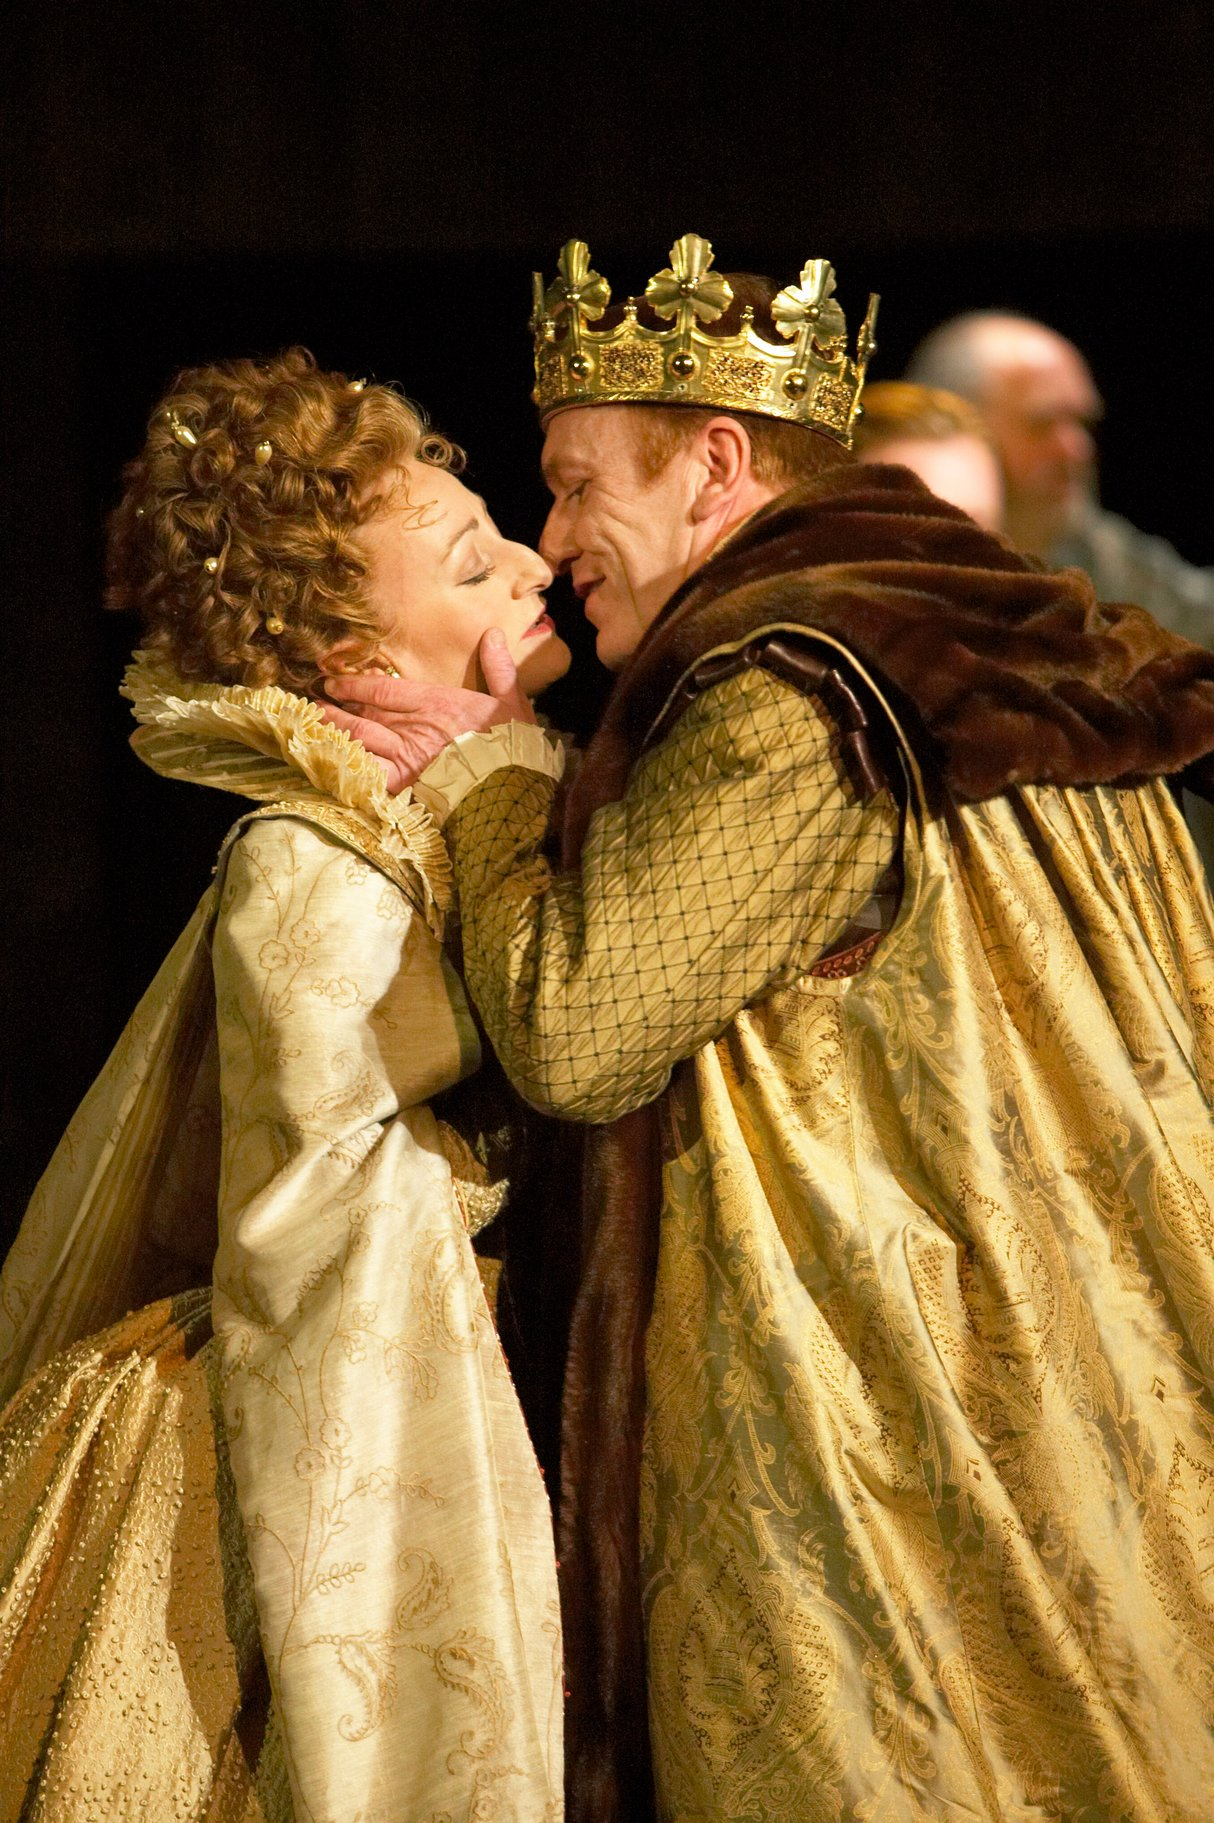 Gertrude and Claudius, both dressed in gold, lean in to kiss.